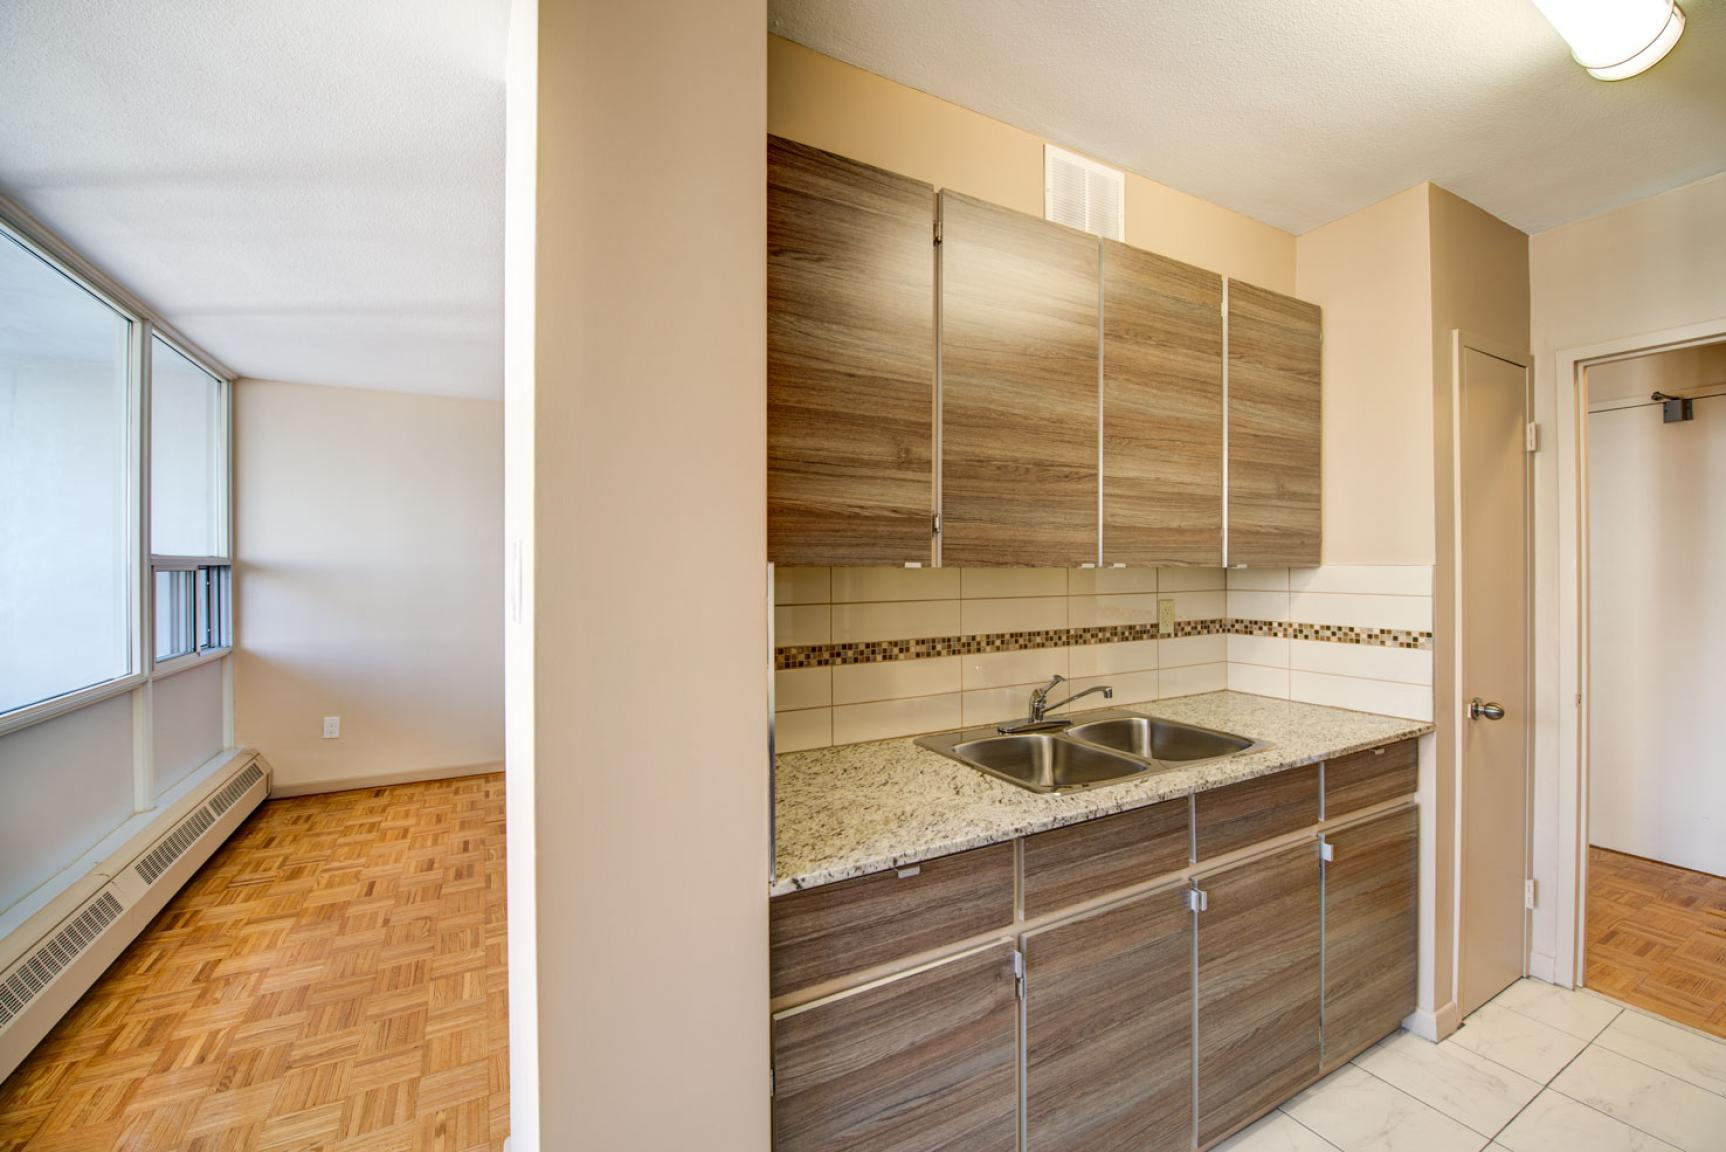 Studio / Bachelor Apartments for rent in Toronto at Dunfield Tower - Photo 14 - RentersPages – L138878